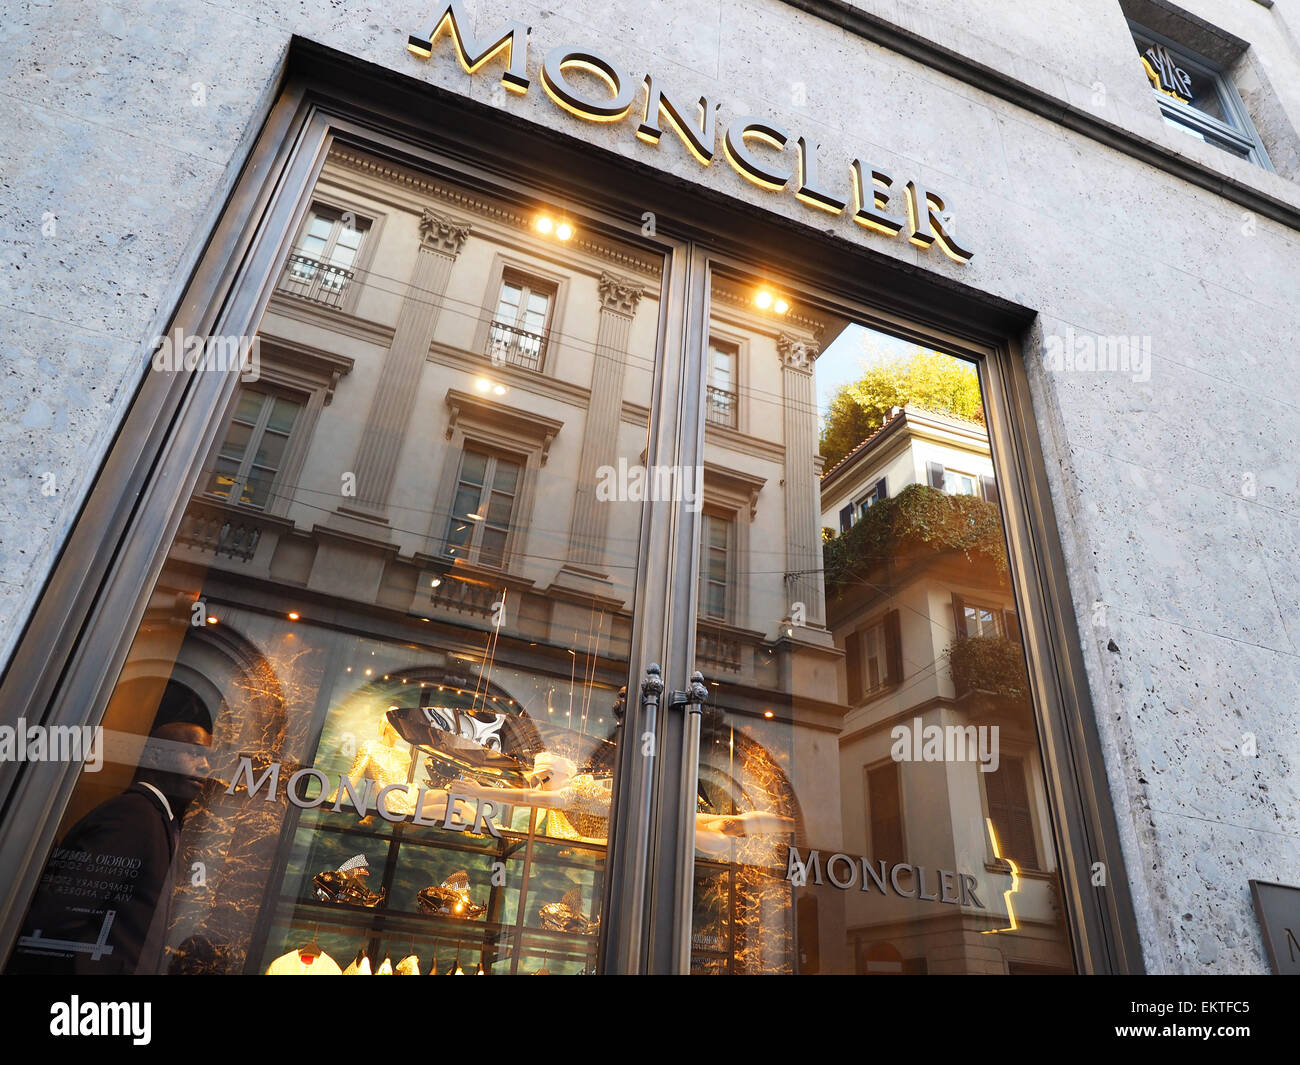 moncler italy